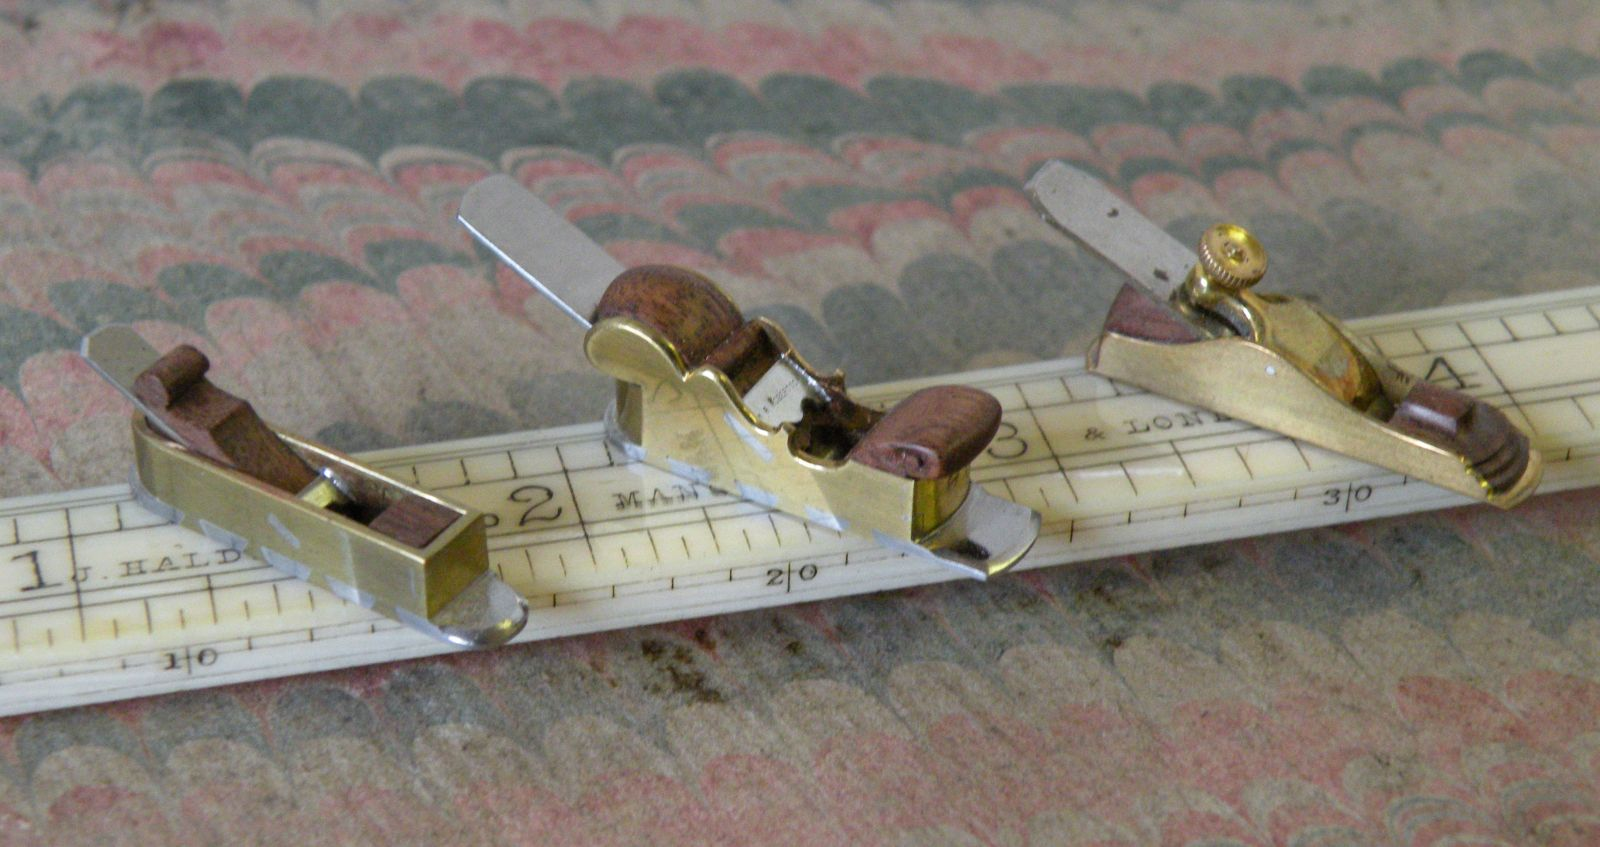 Scale working Planes by Wm. R. Robertson